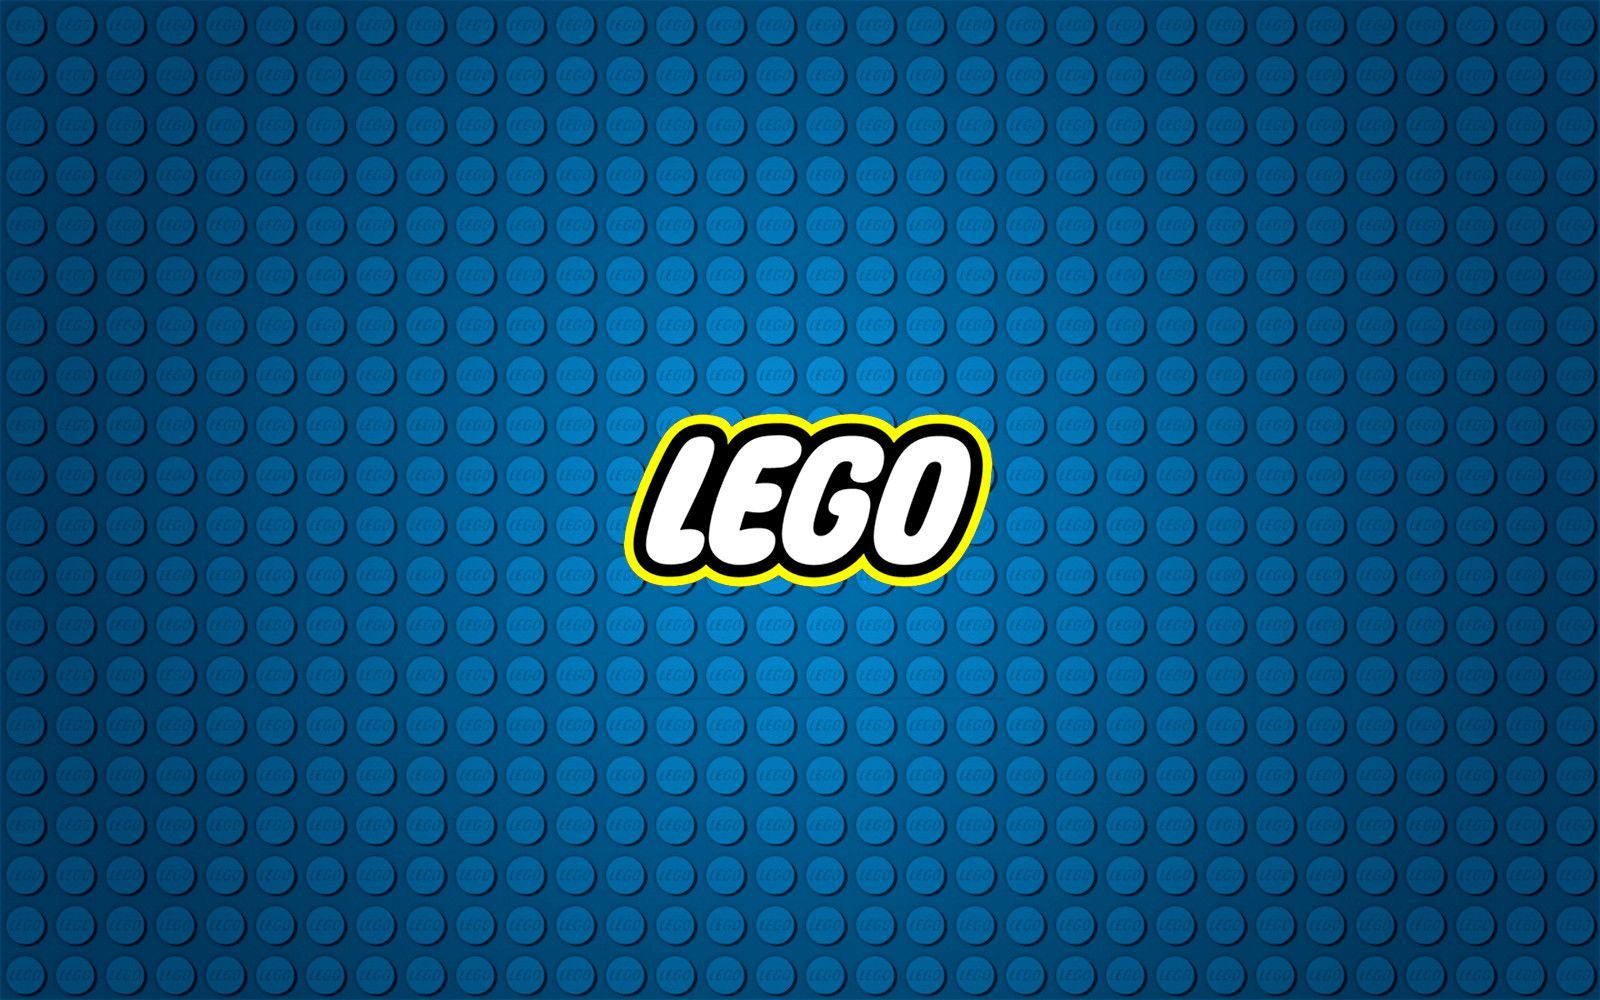 Lego Wallpapers Top Free Lego Backgrounds Wallpaperaccess